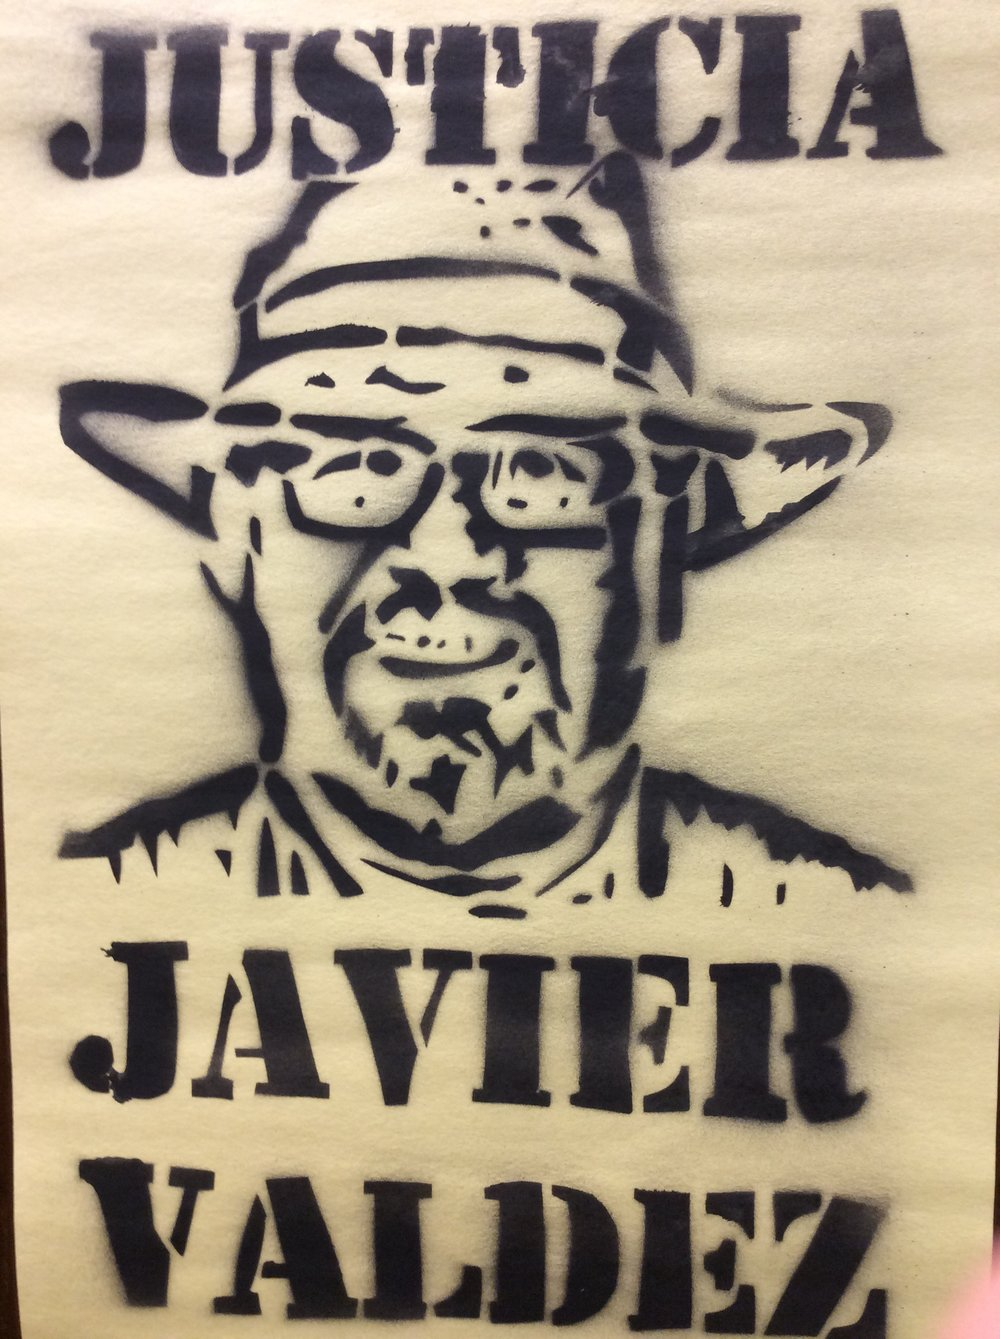 Stencil used during a vigil for Javier (created by Natalia Reyes and Michael Lettieri).